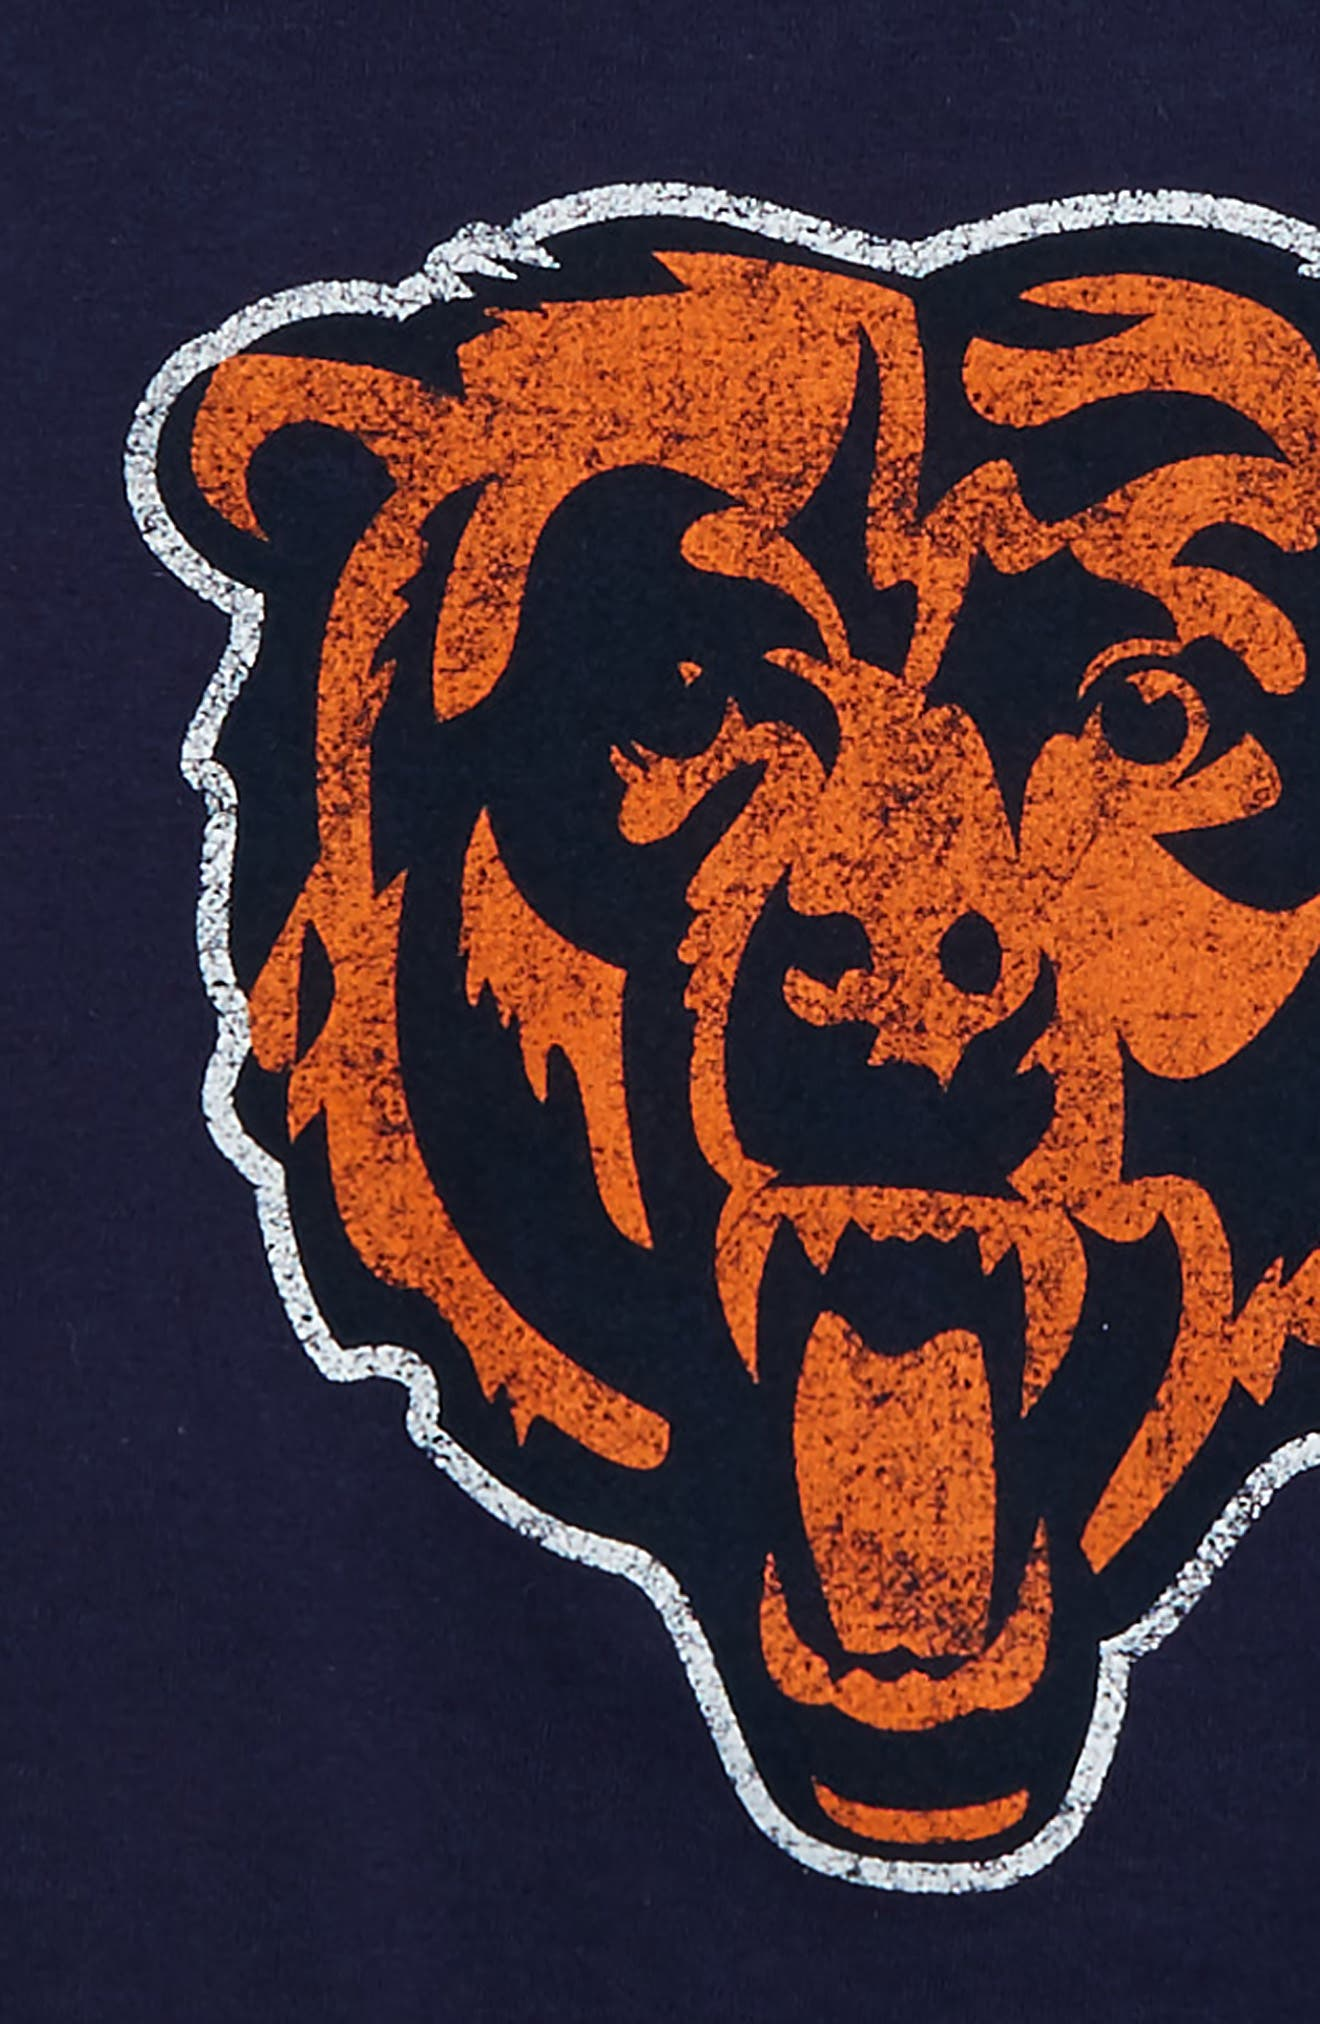 'NFL - Chicago Bears' Distressed Logo Graphic T-Shirt,                             Alternate thumbnail 3, color,                             410